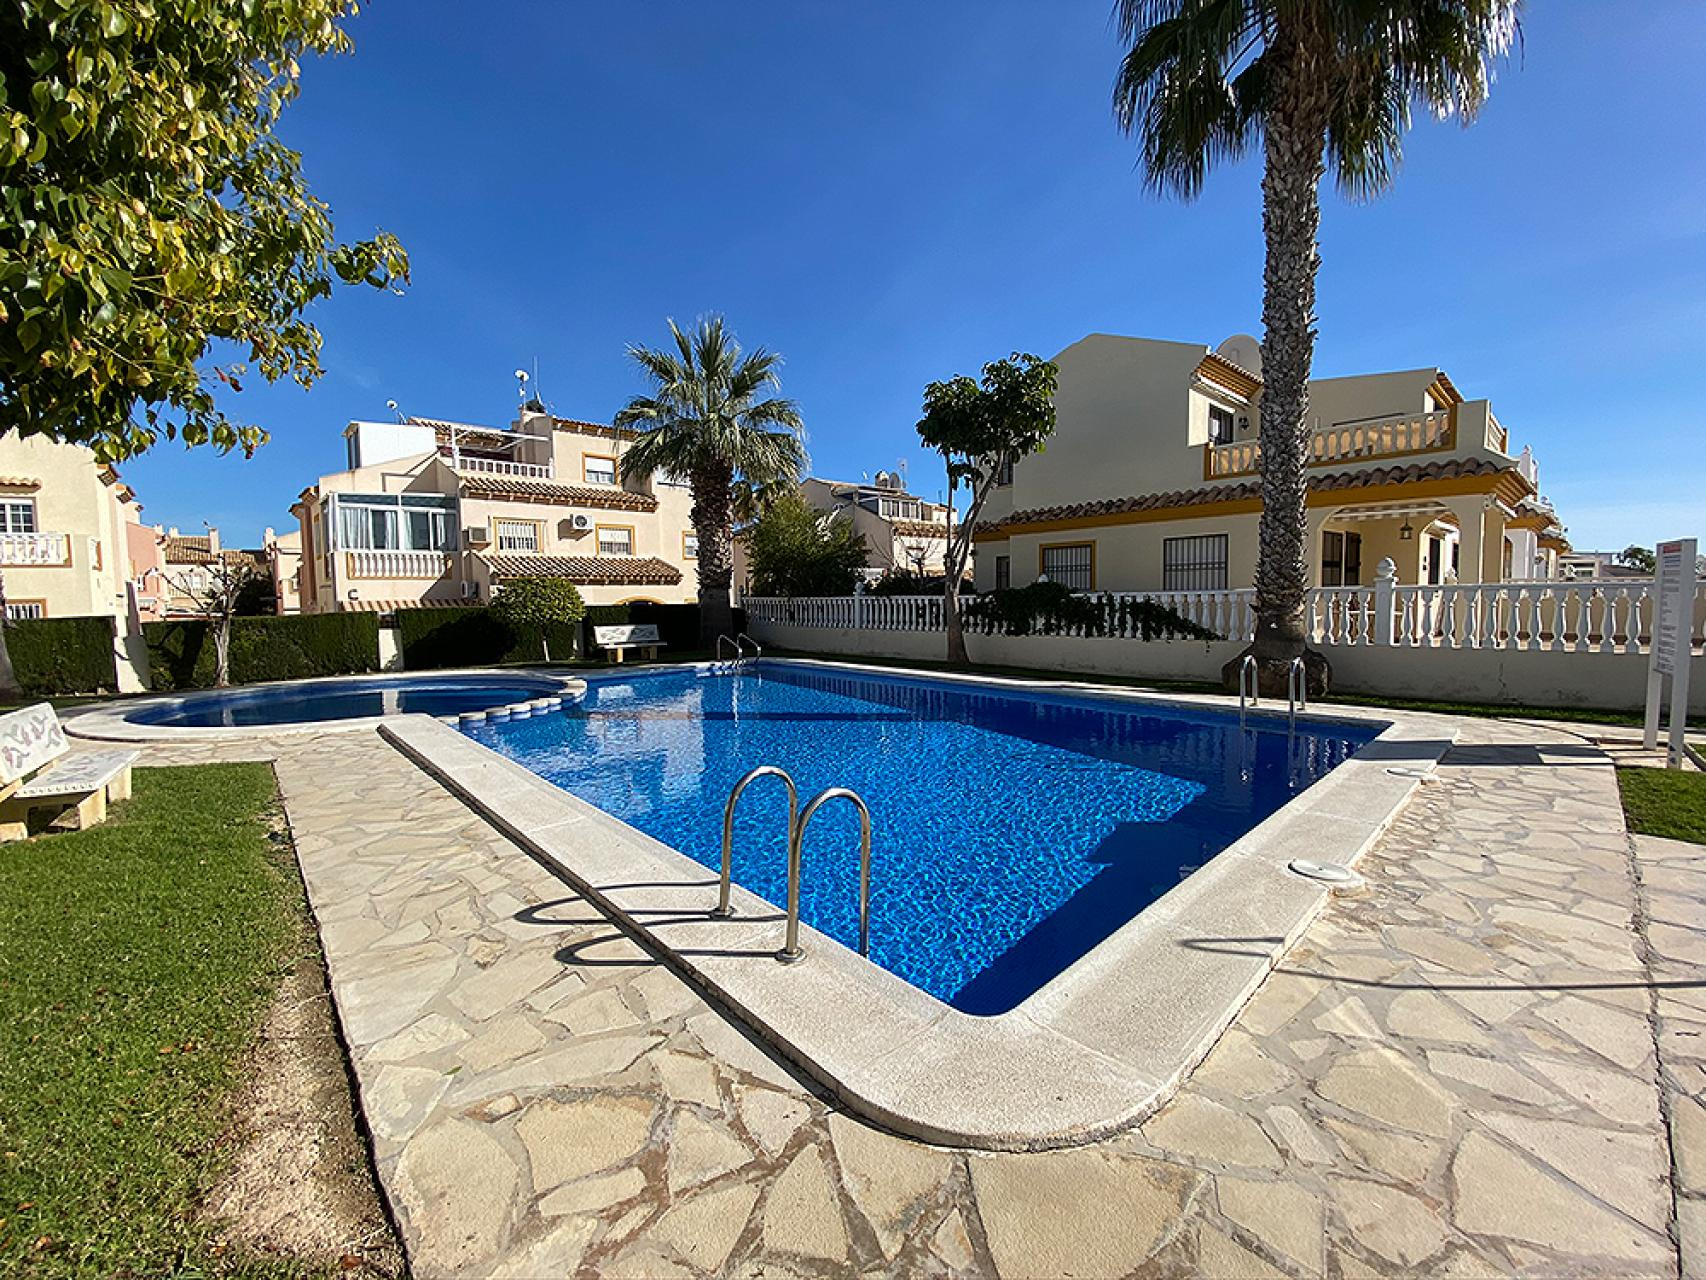 Townhouse in Orihuela Costa (Alicante)